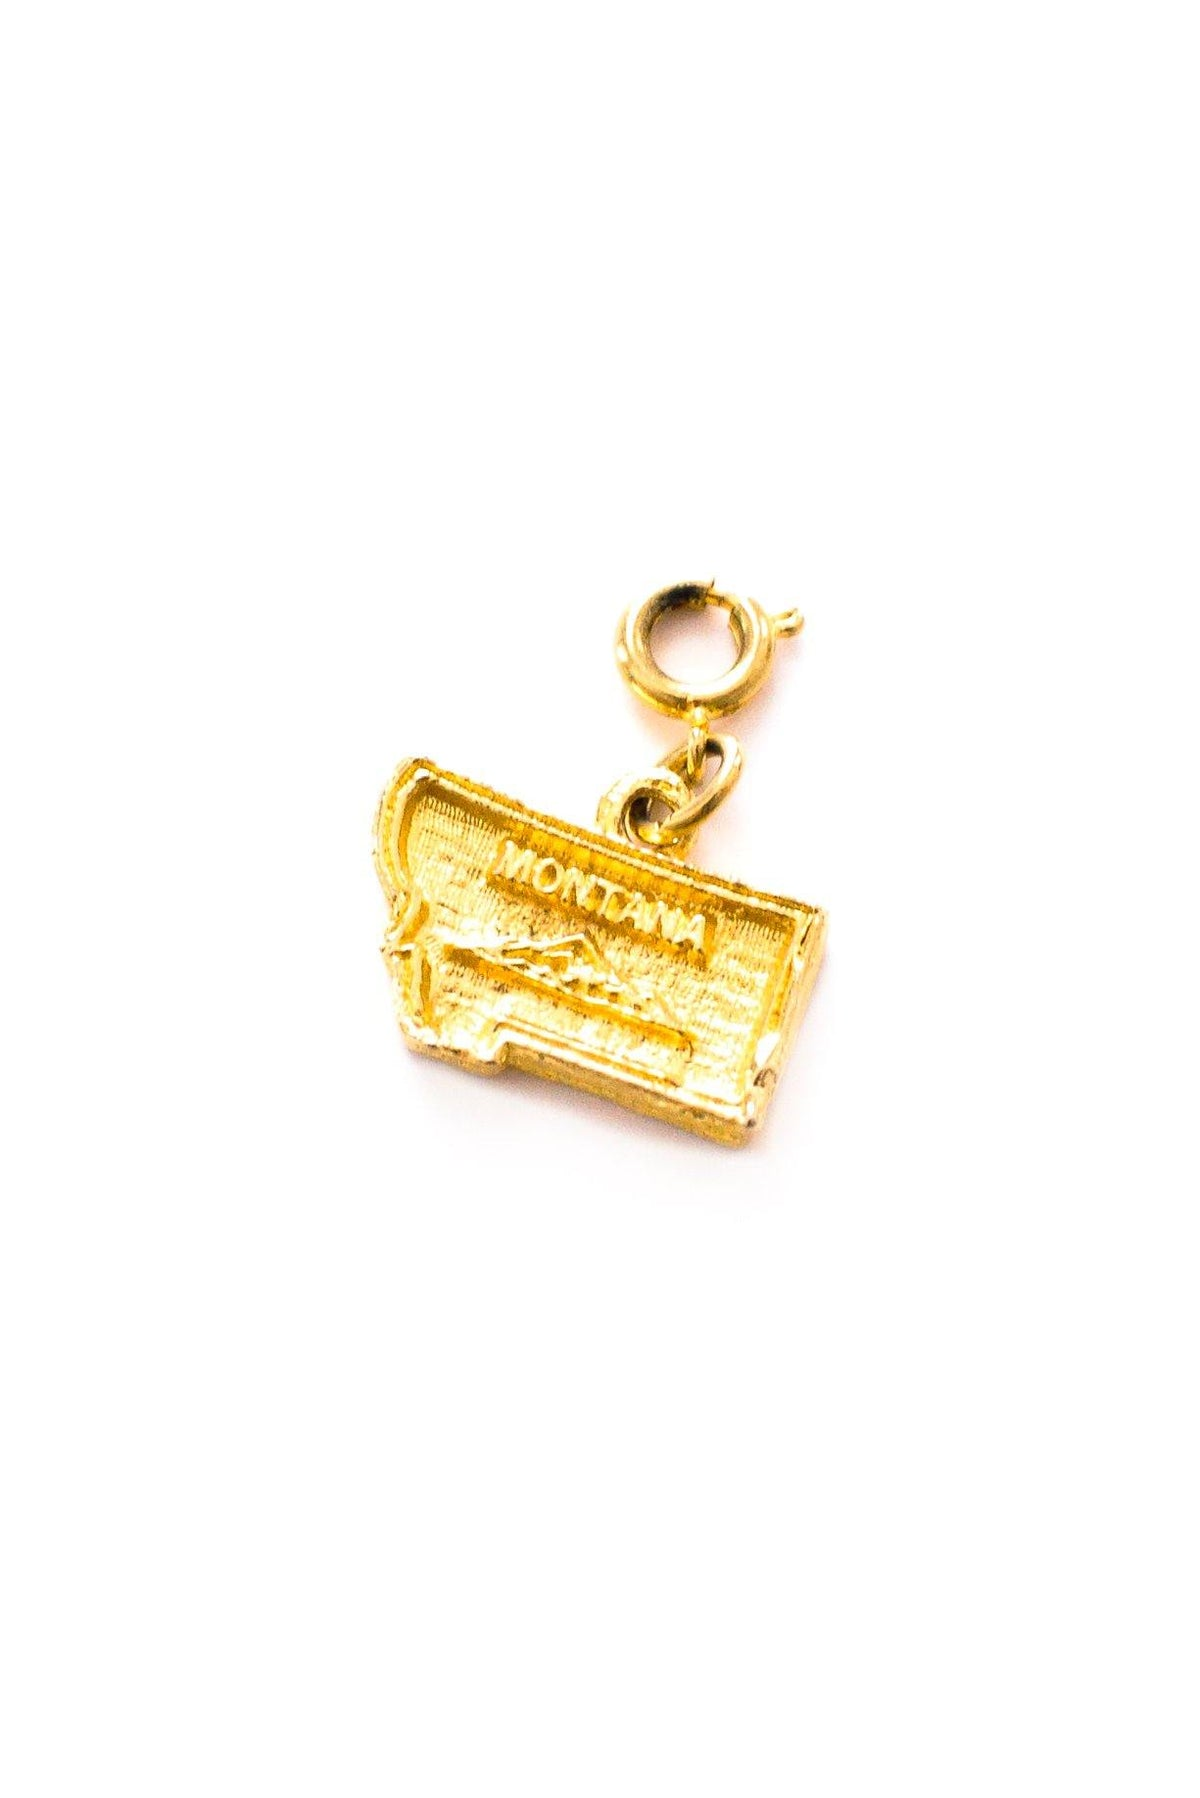 Vintage Montana state charm from Sweet & Spark.